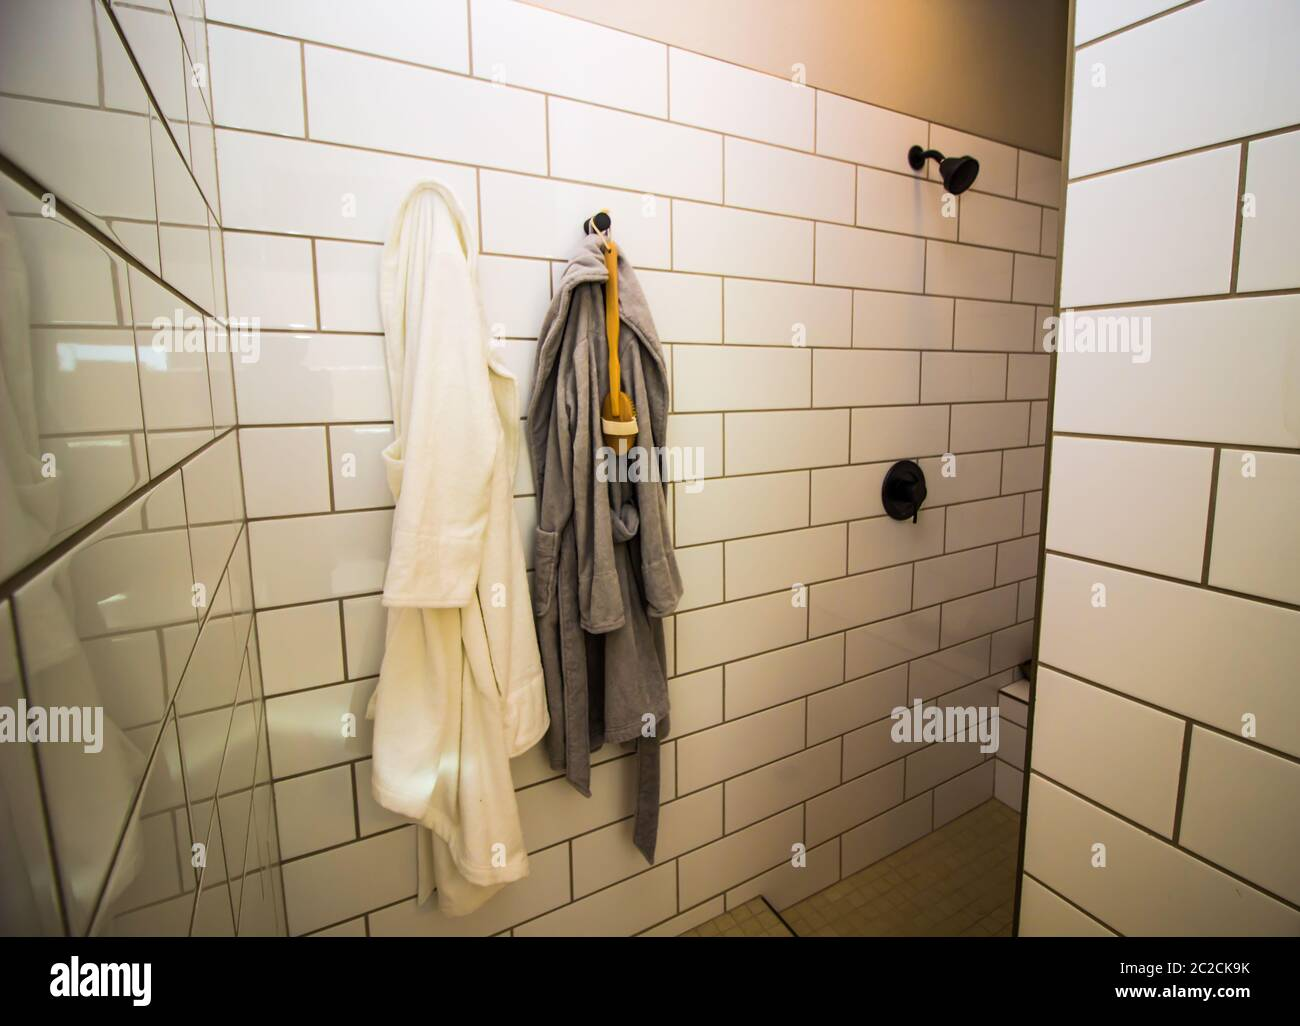 Modern Walk In Shower With Hanging Robes Stock Photo Alamy